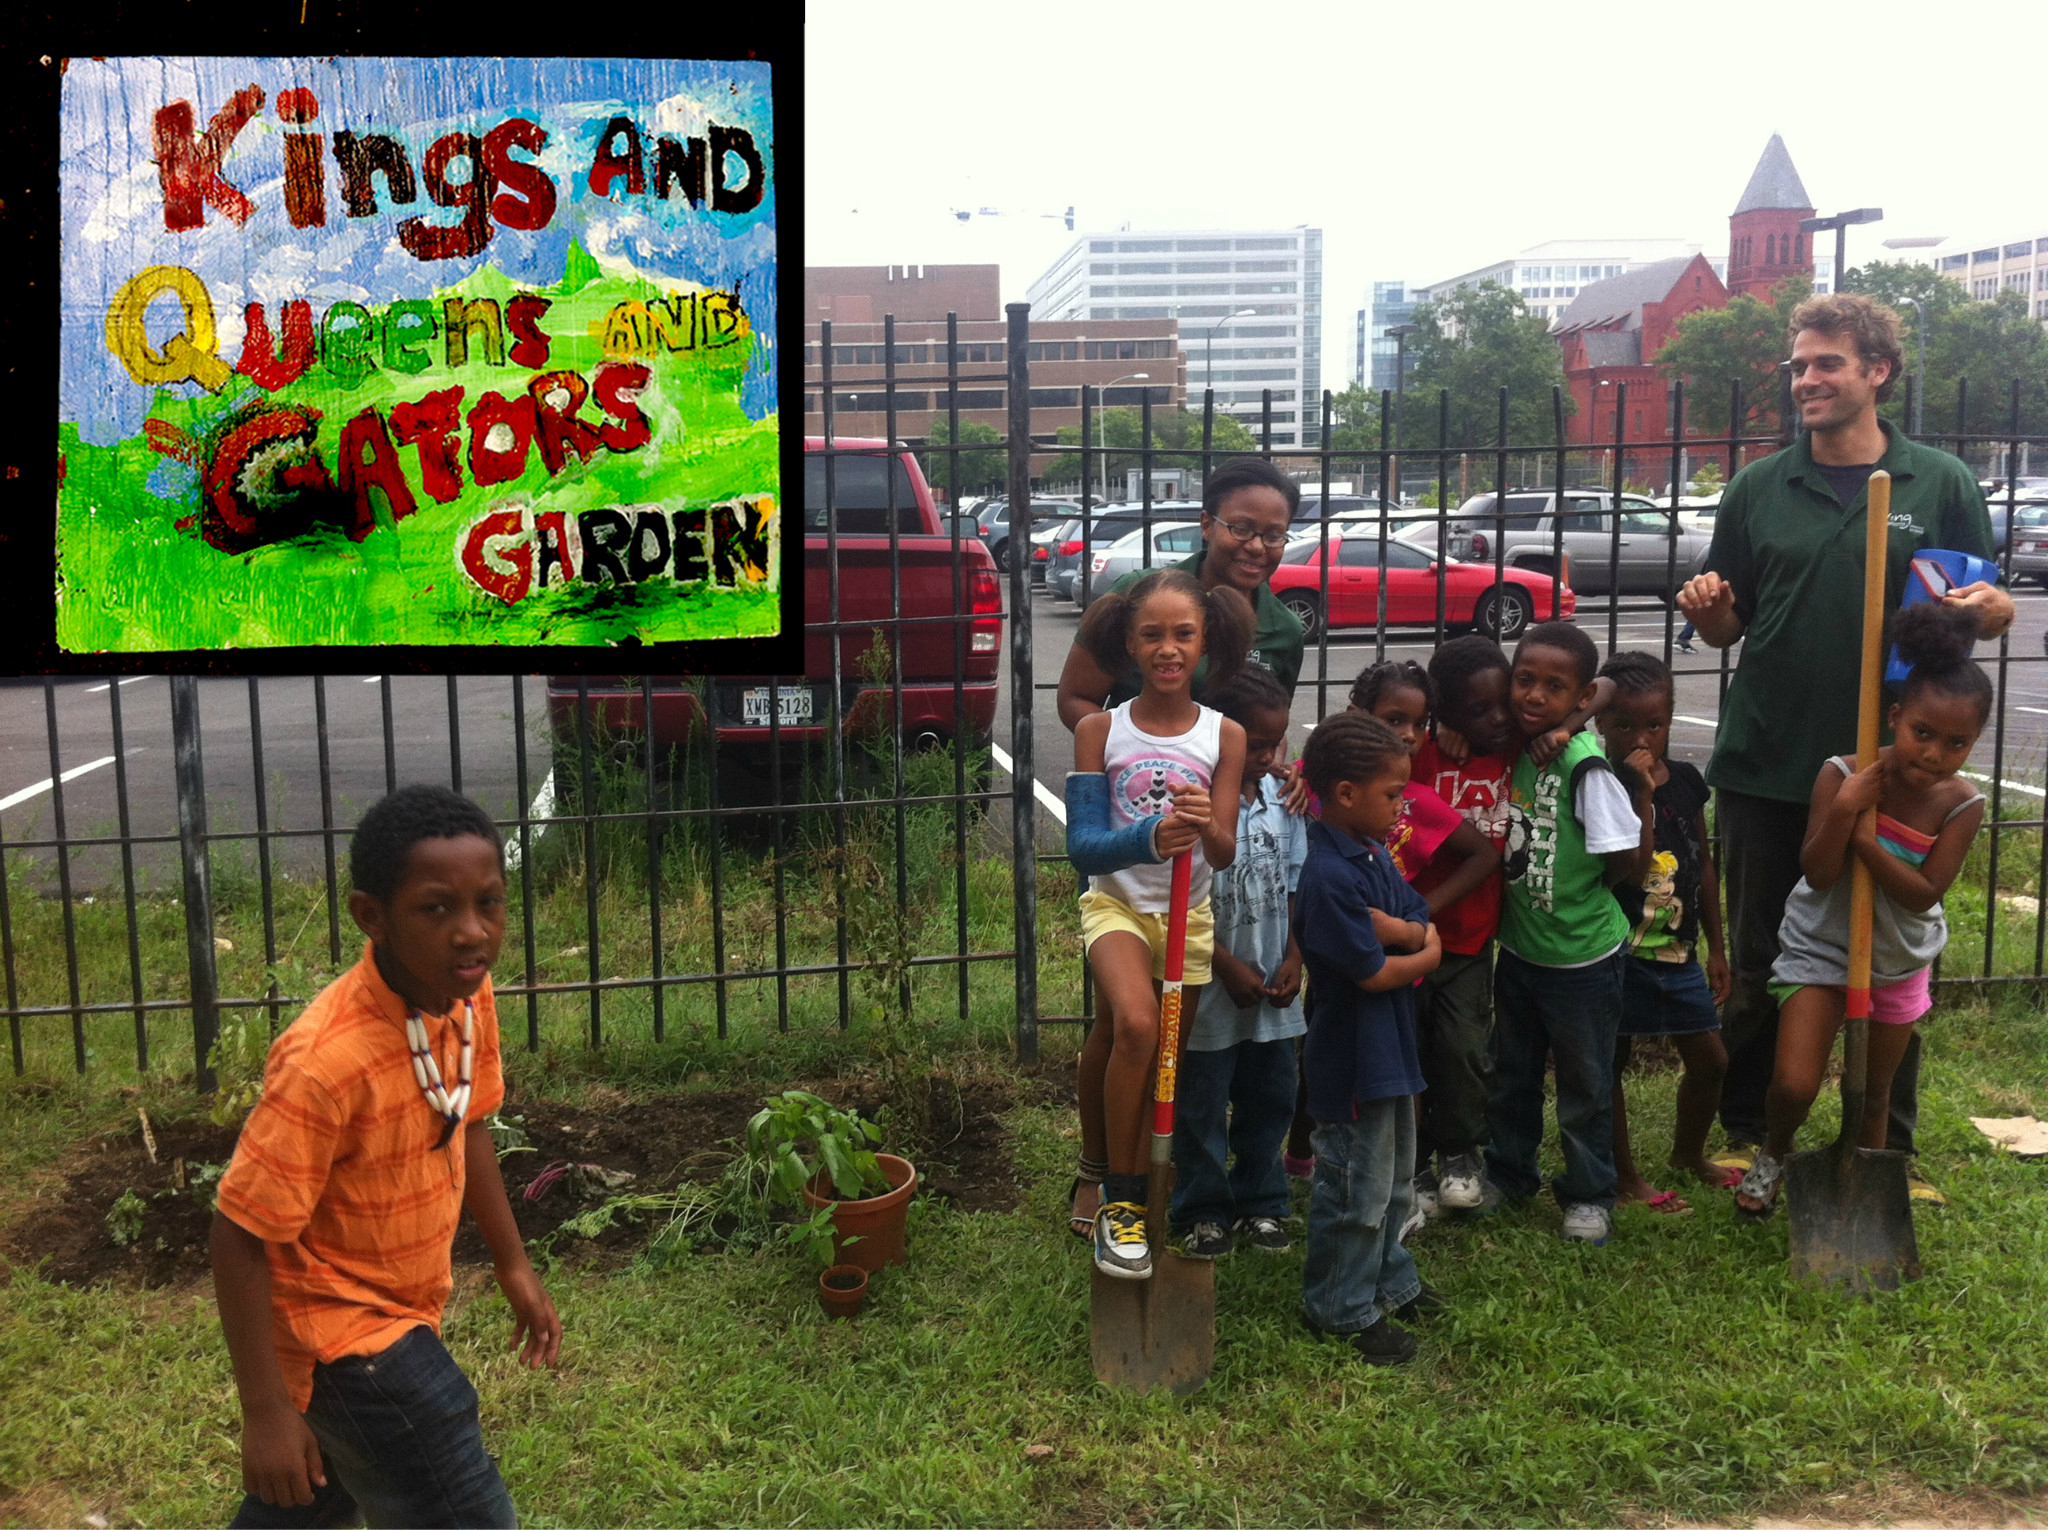 Kings and Queens and Gators Garden